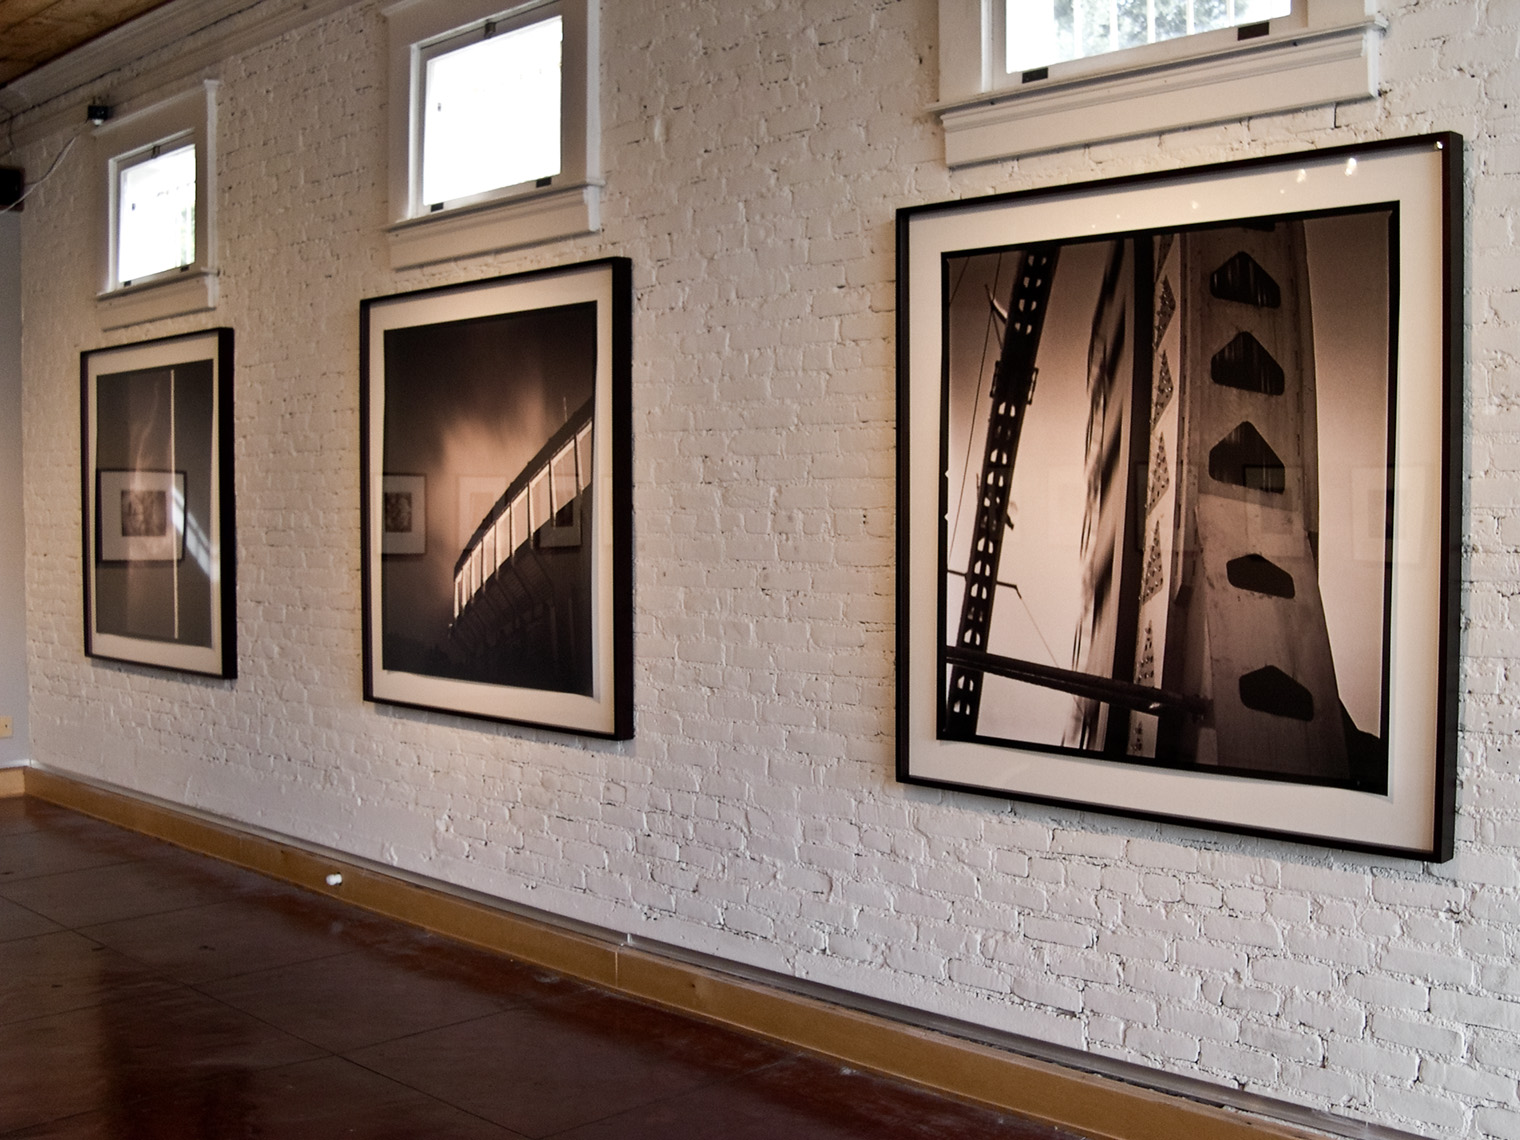 Sean Perry Photographs • D. Berman Installation